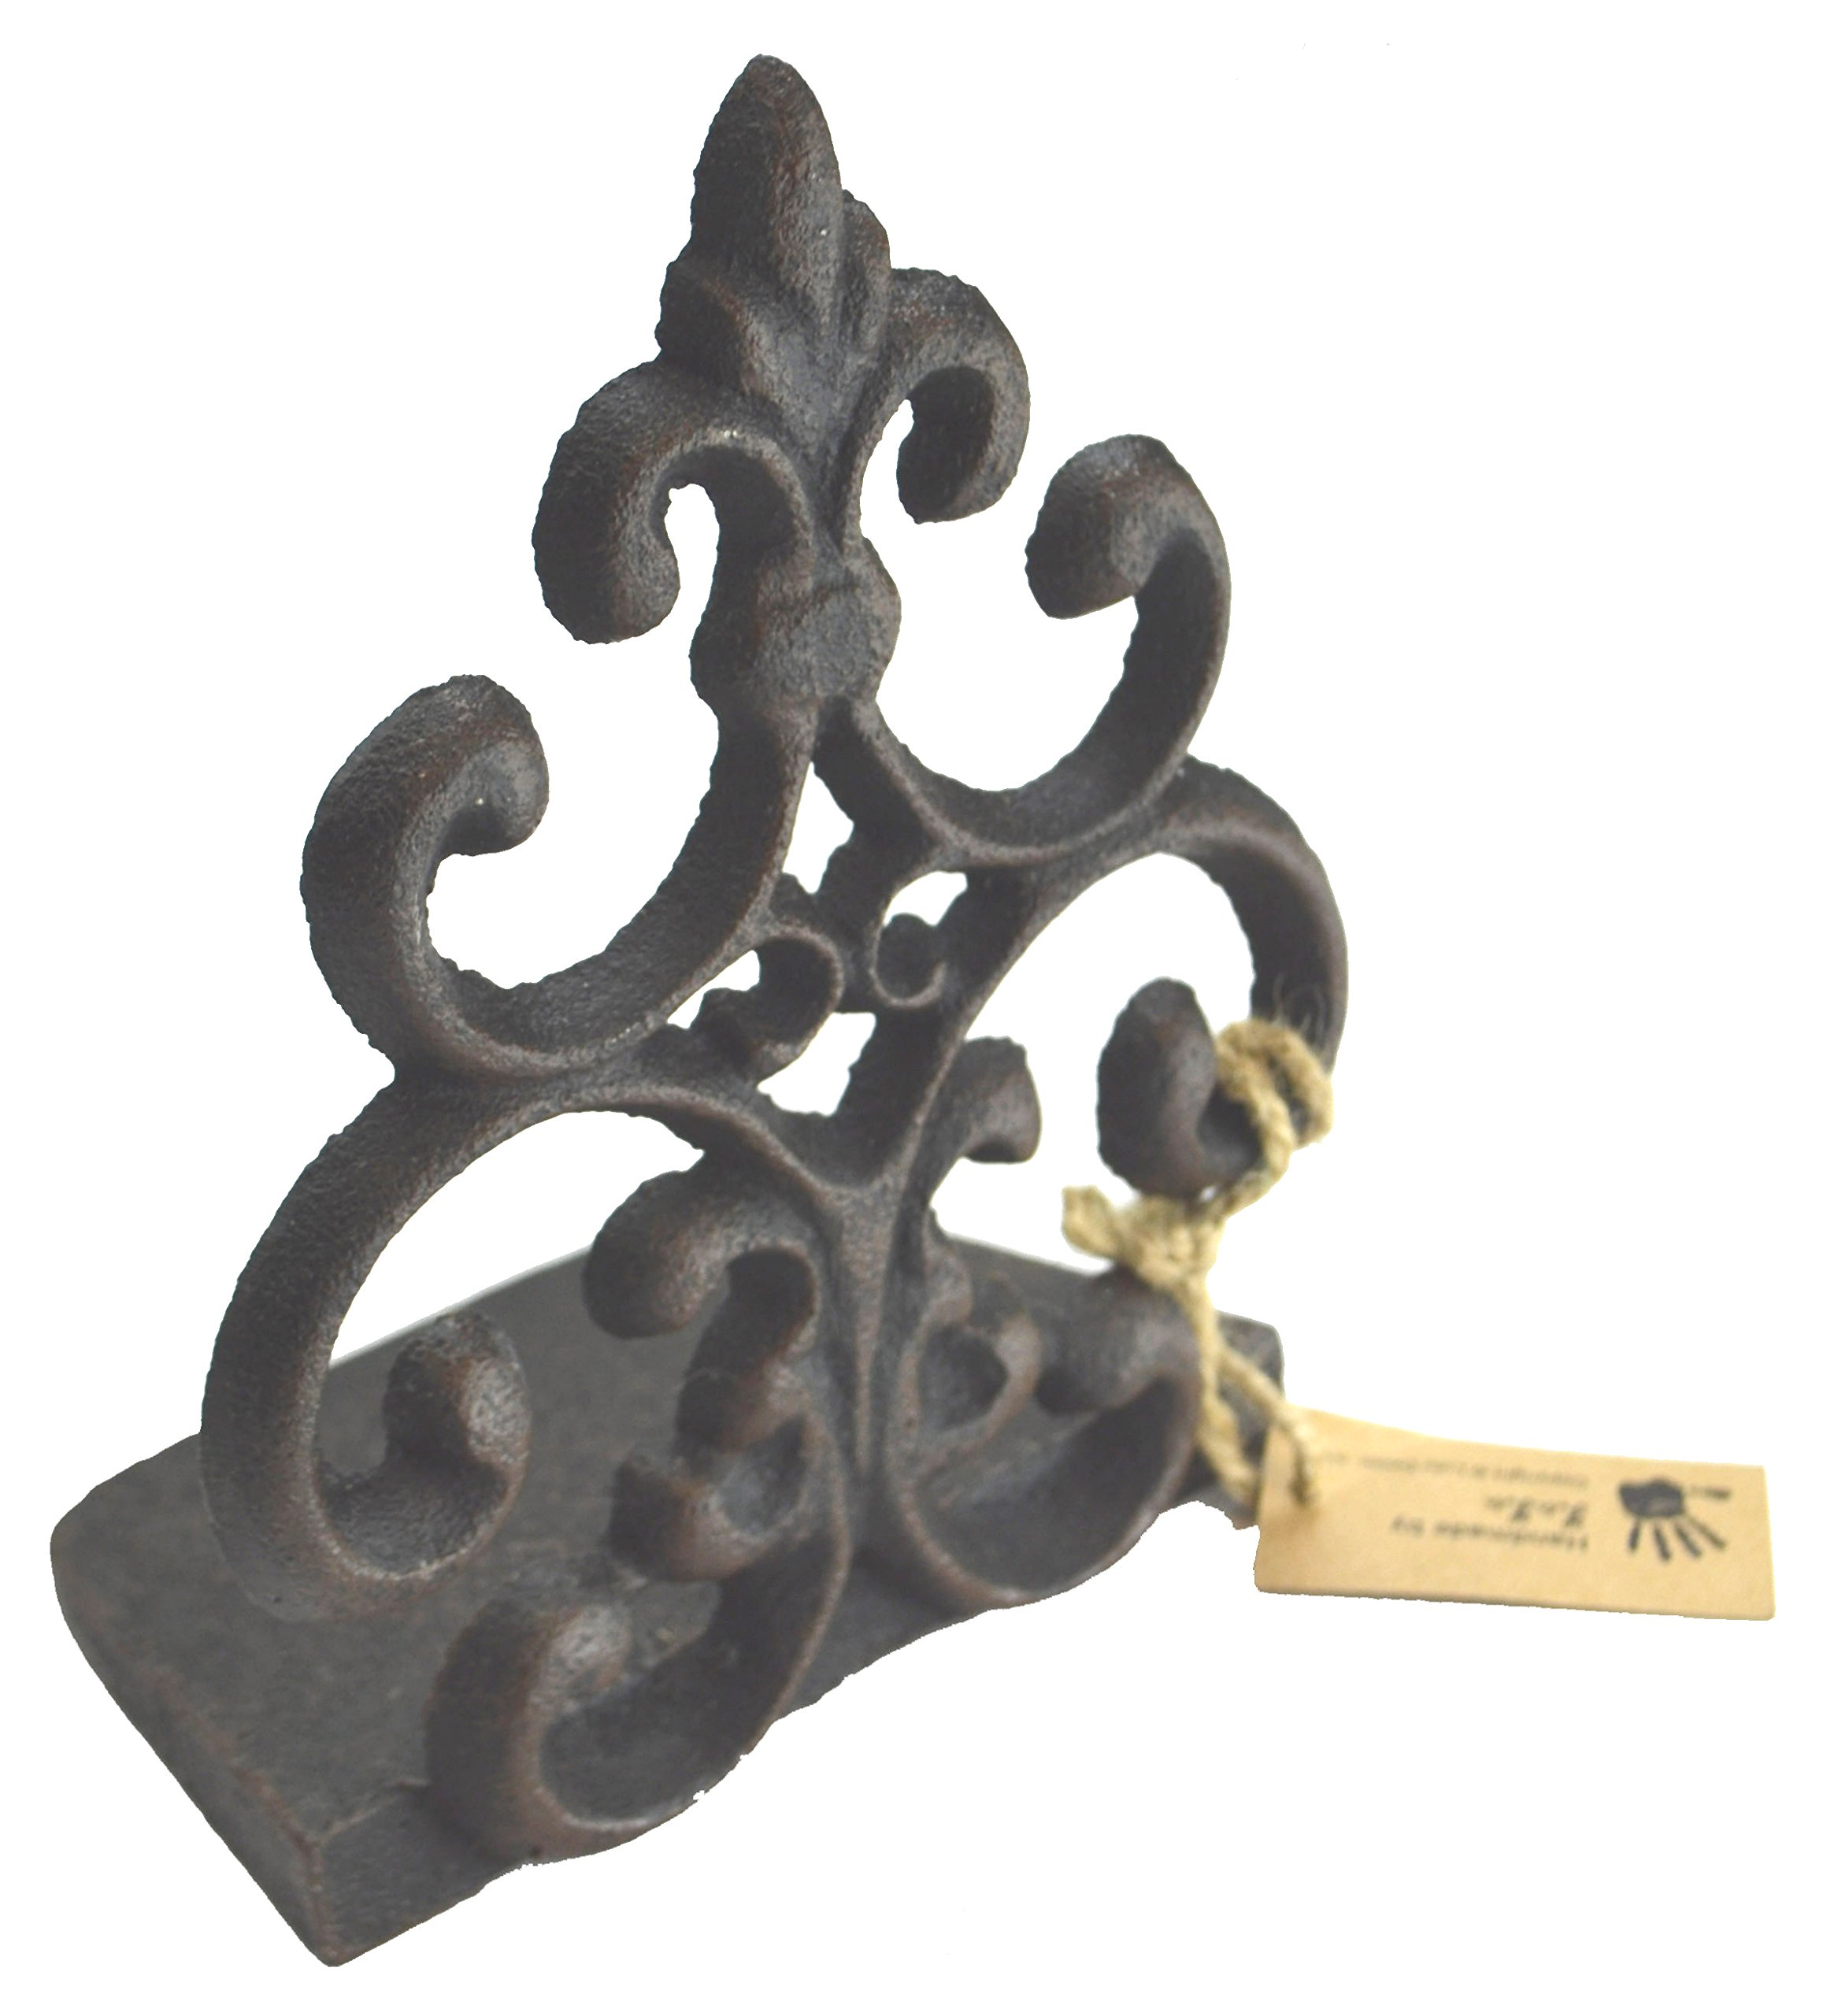 Lulu Decor, Cast Iron Fleur De Lis Door Stop, Door Stopper in Antique Black Finish, Beautiful and Useful Product (1) by Lulu Decor